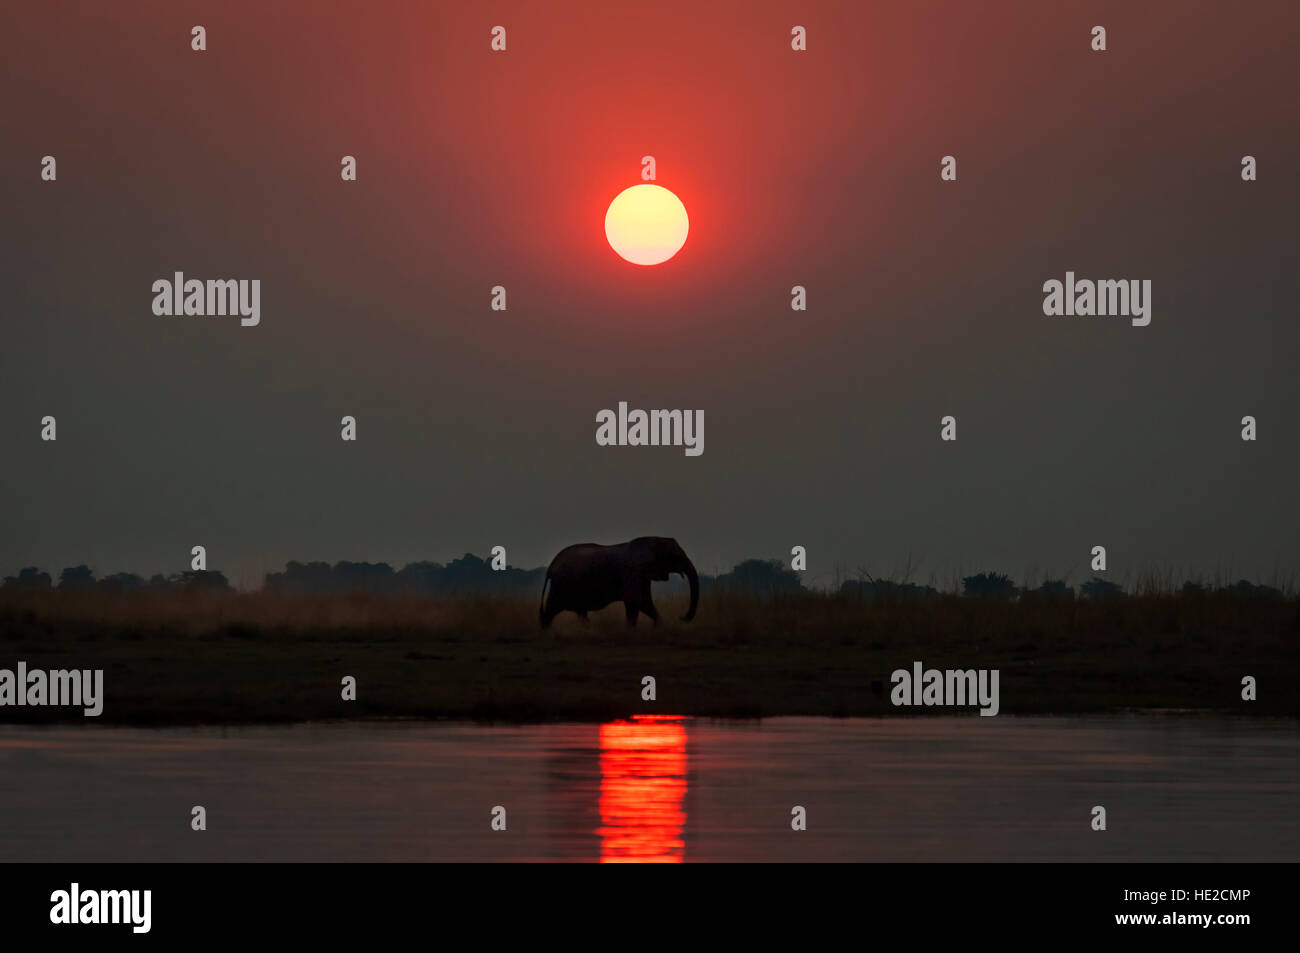 Silhouette of an elepanhts at sunset in the Chobe National Park in Botswana; Concept for travel safari and travel - Stock Image